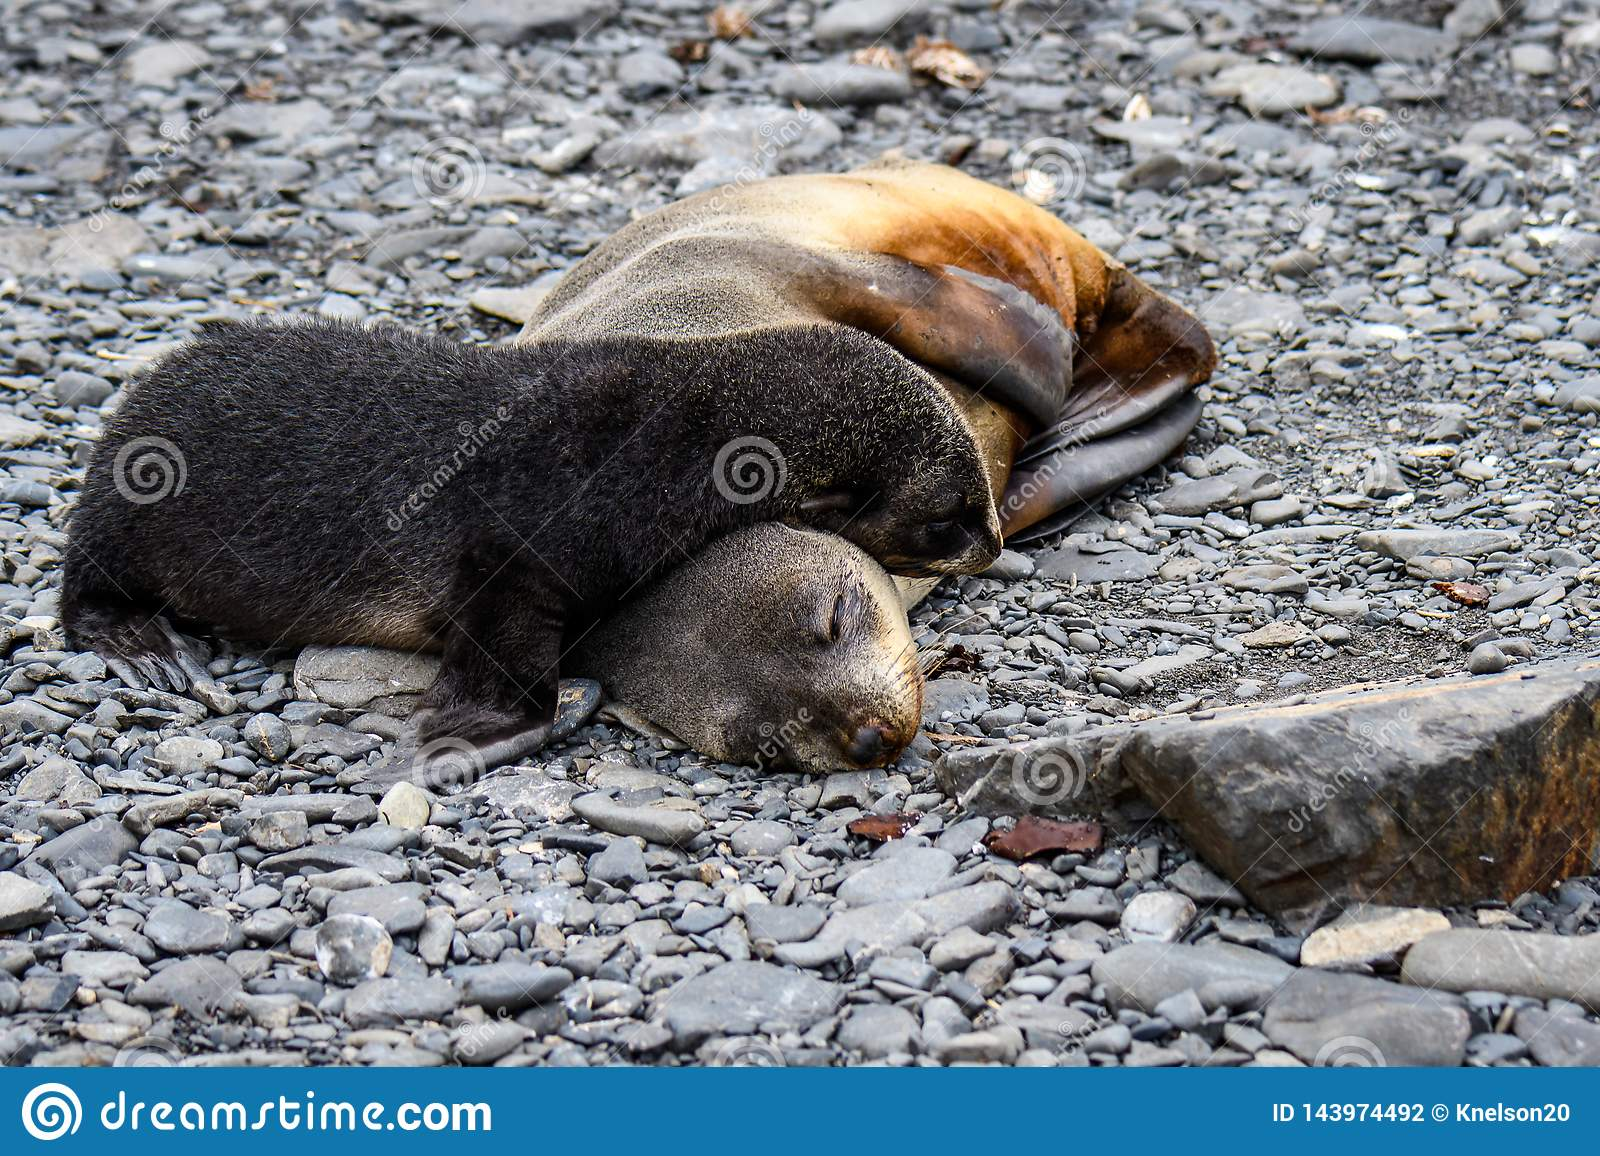 Adorable mother and pup fur seals cuddled up sleeping on rocky beach, Prion Island, South Georgia